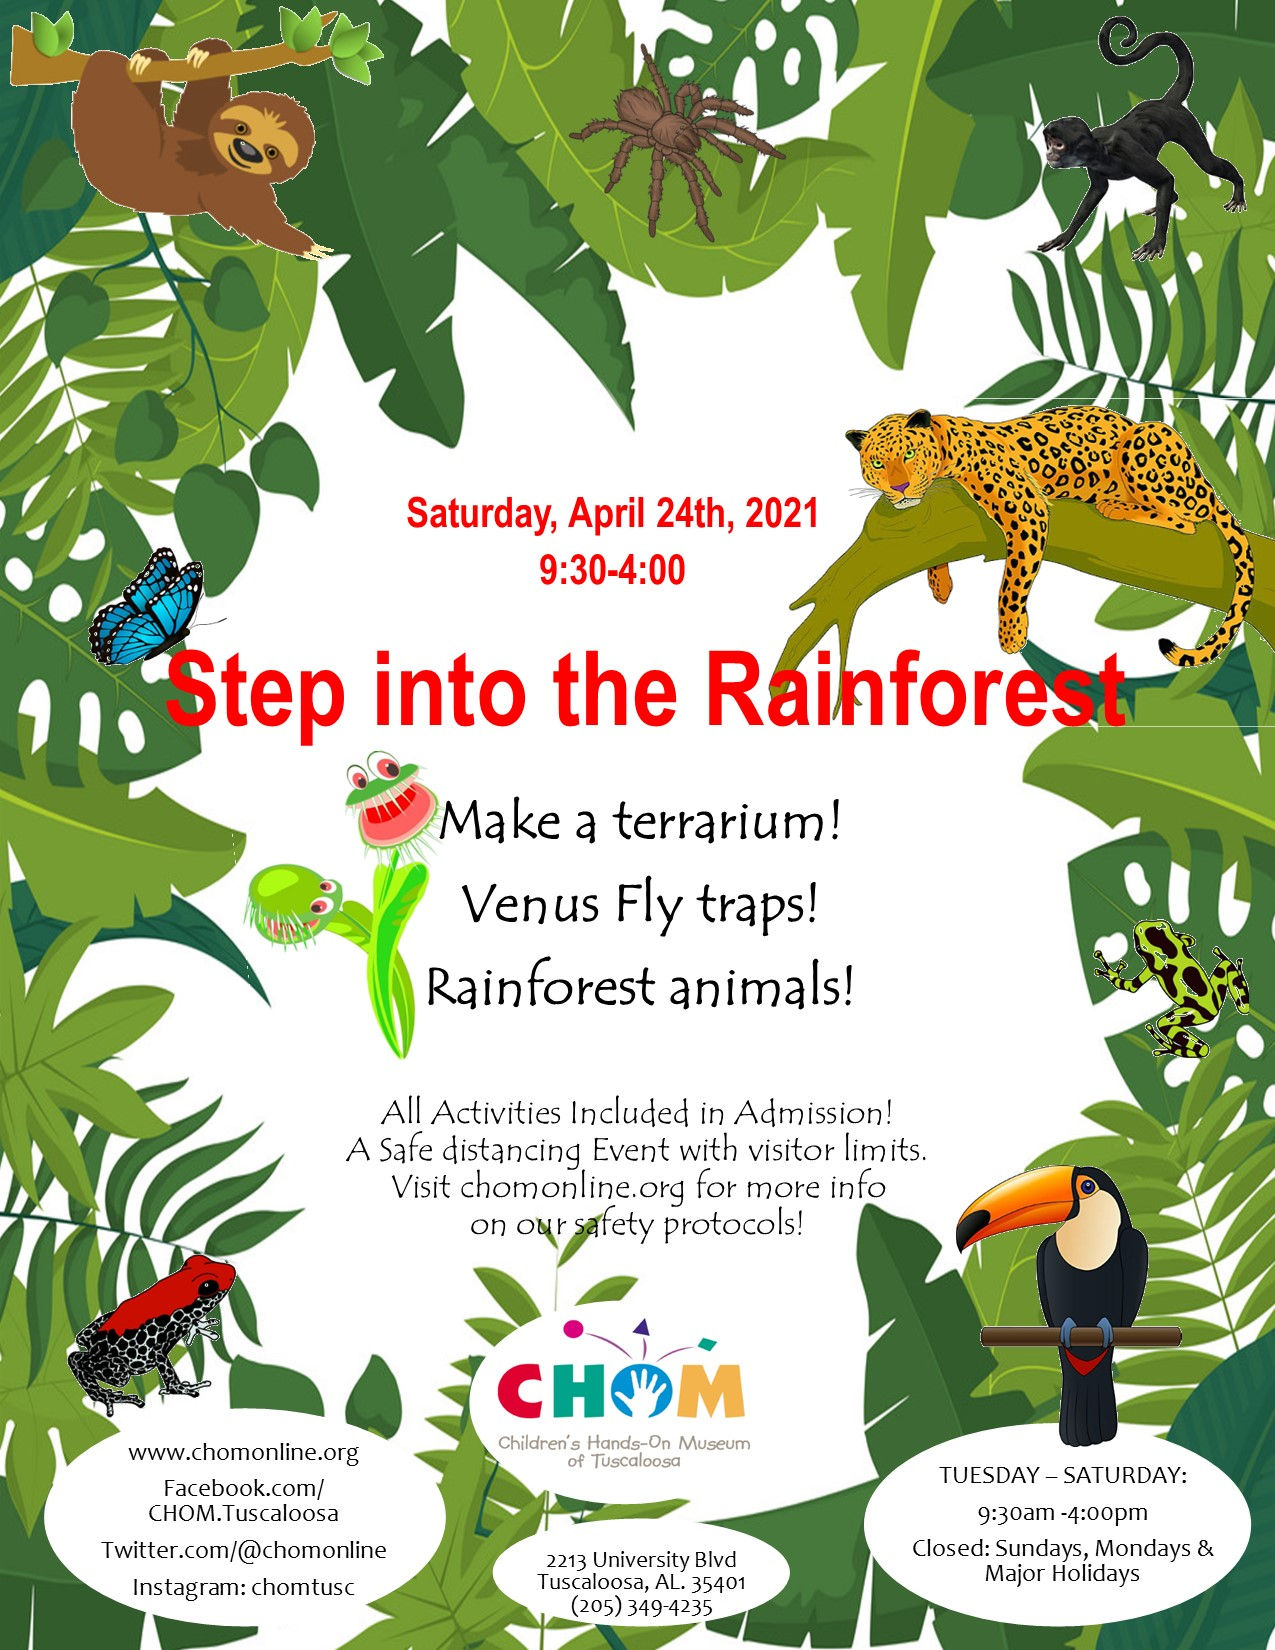 Step into the Rainforest at CHOM!